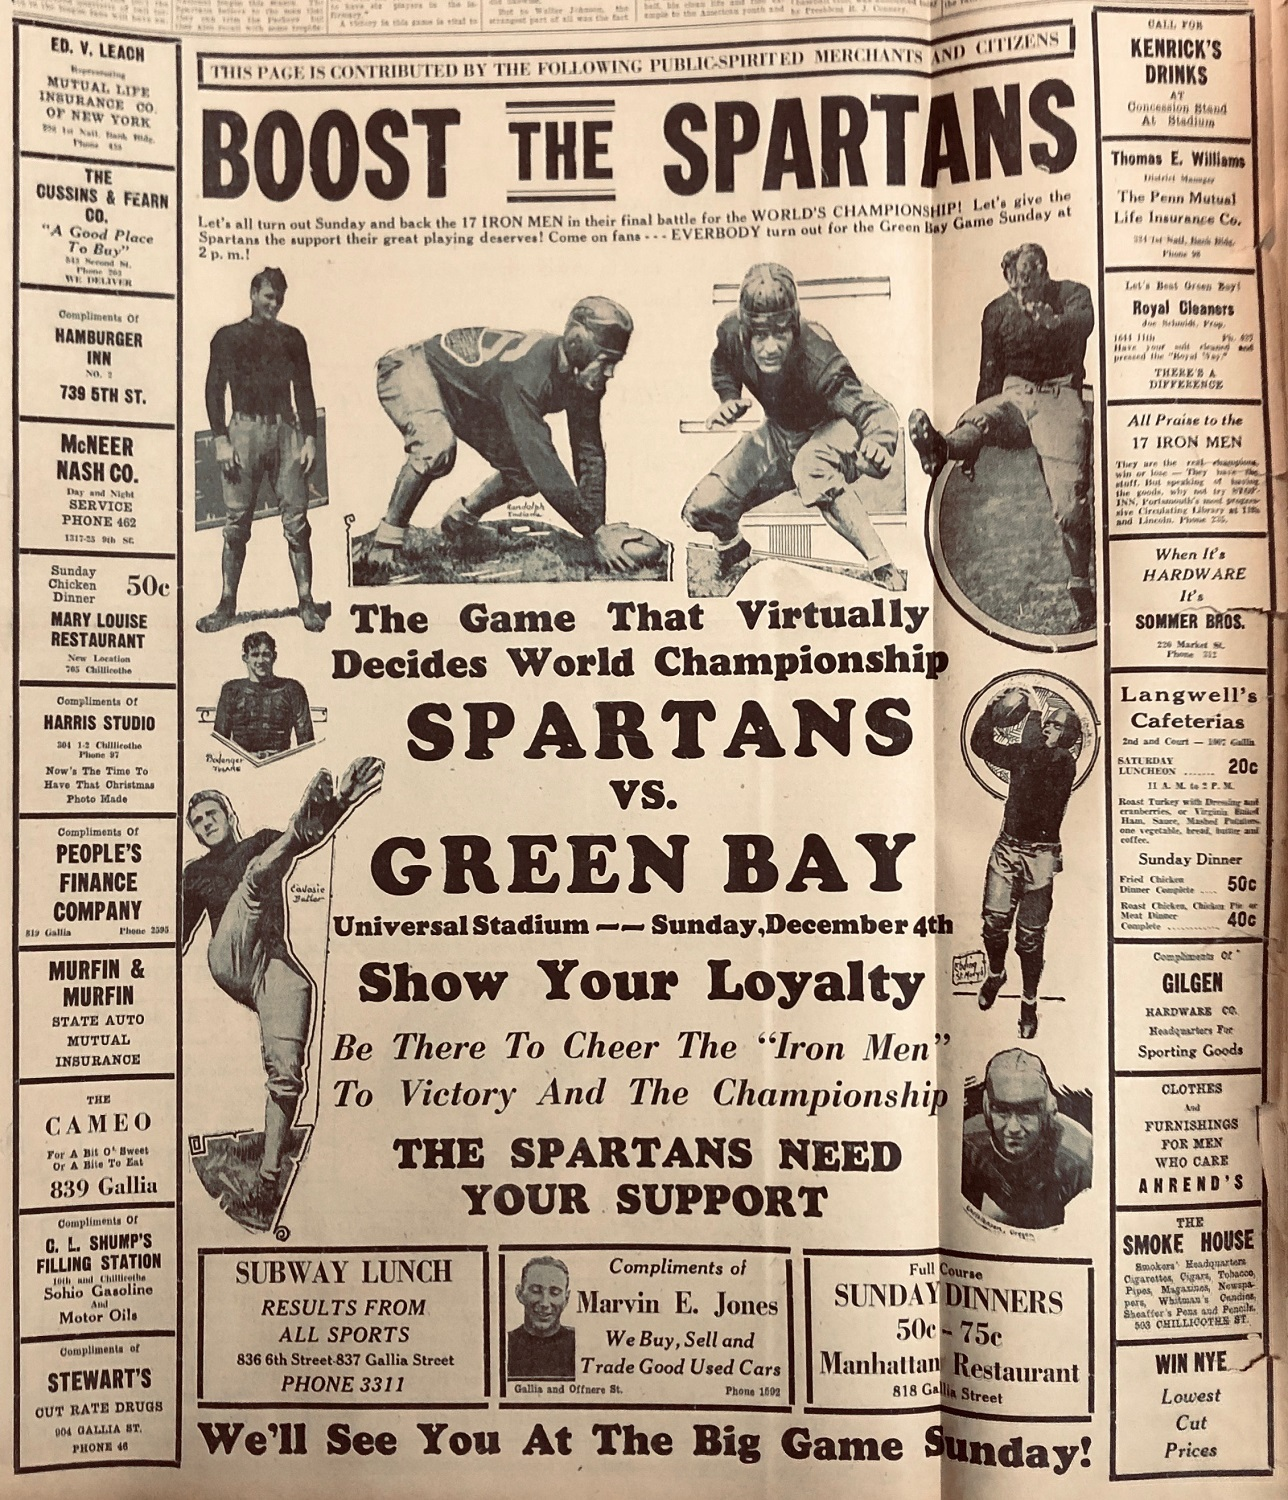 Flyer advertising the Iron Man Game of 1932